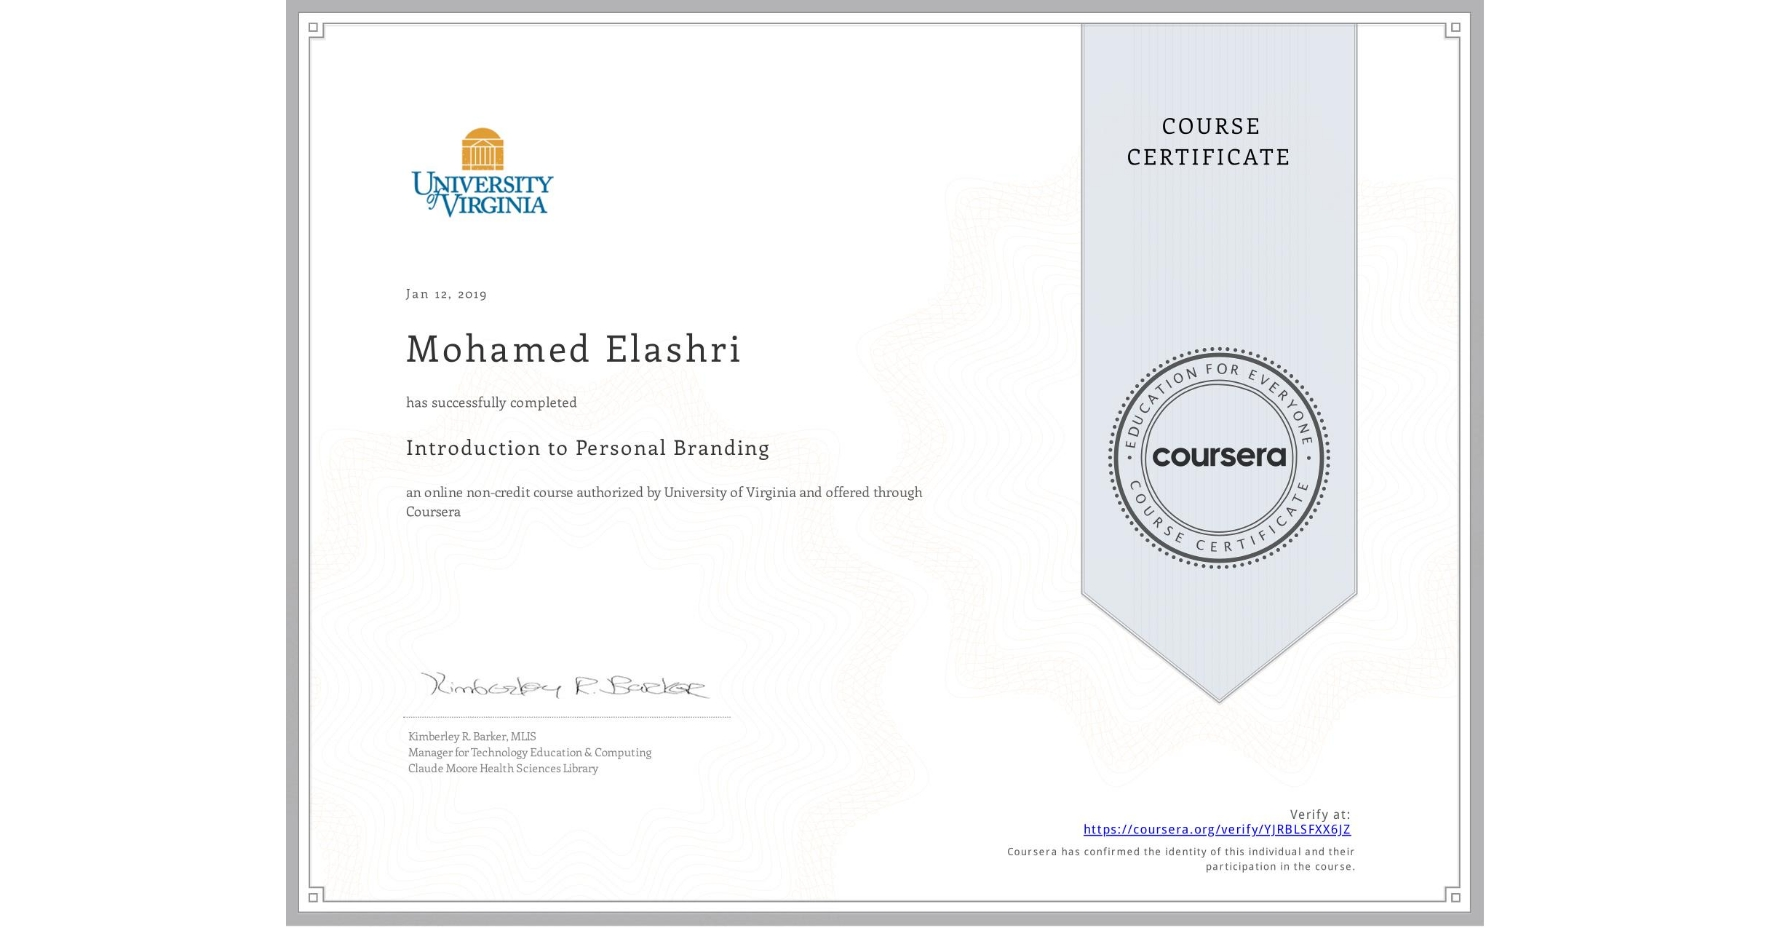 View certificate for Mohamed Elashri, Introduction to Personal Branding, an online non-credit course authorized by University of Virginia and offered through Coursera